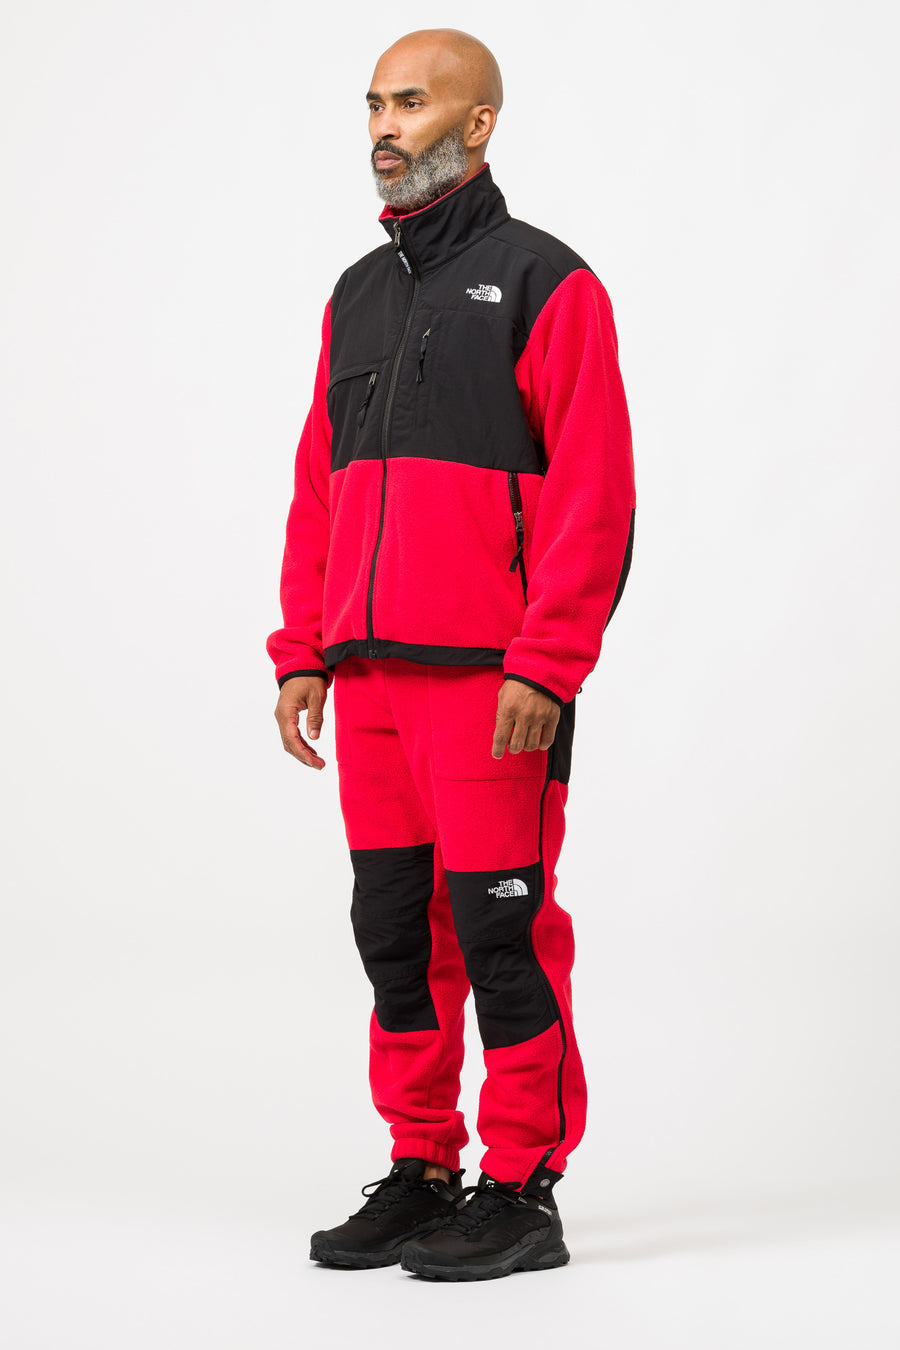 The North Face 95 Retro Denali Jacket in Red/Black - Notre